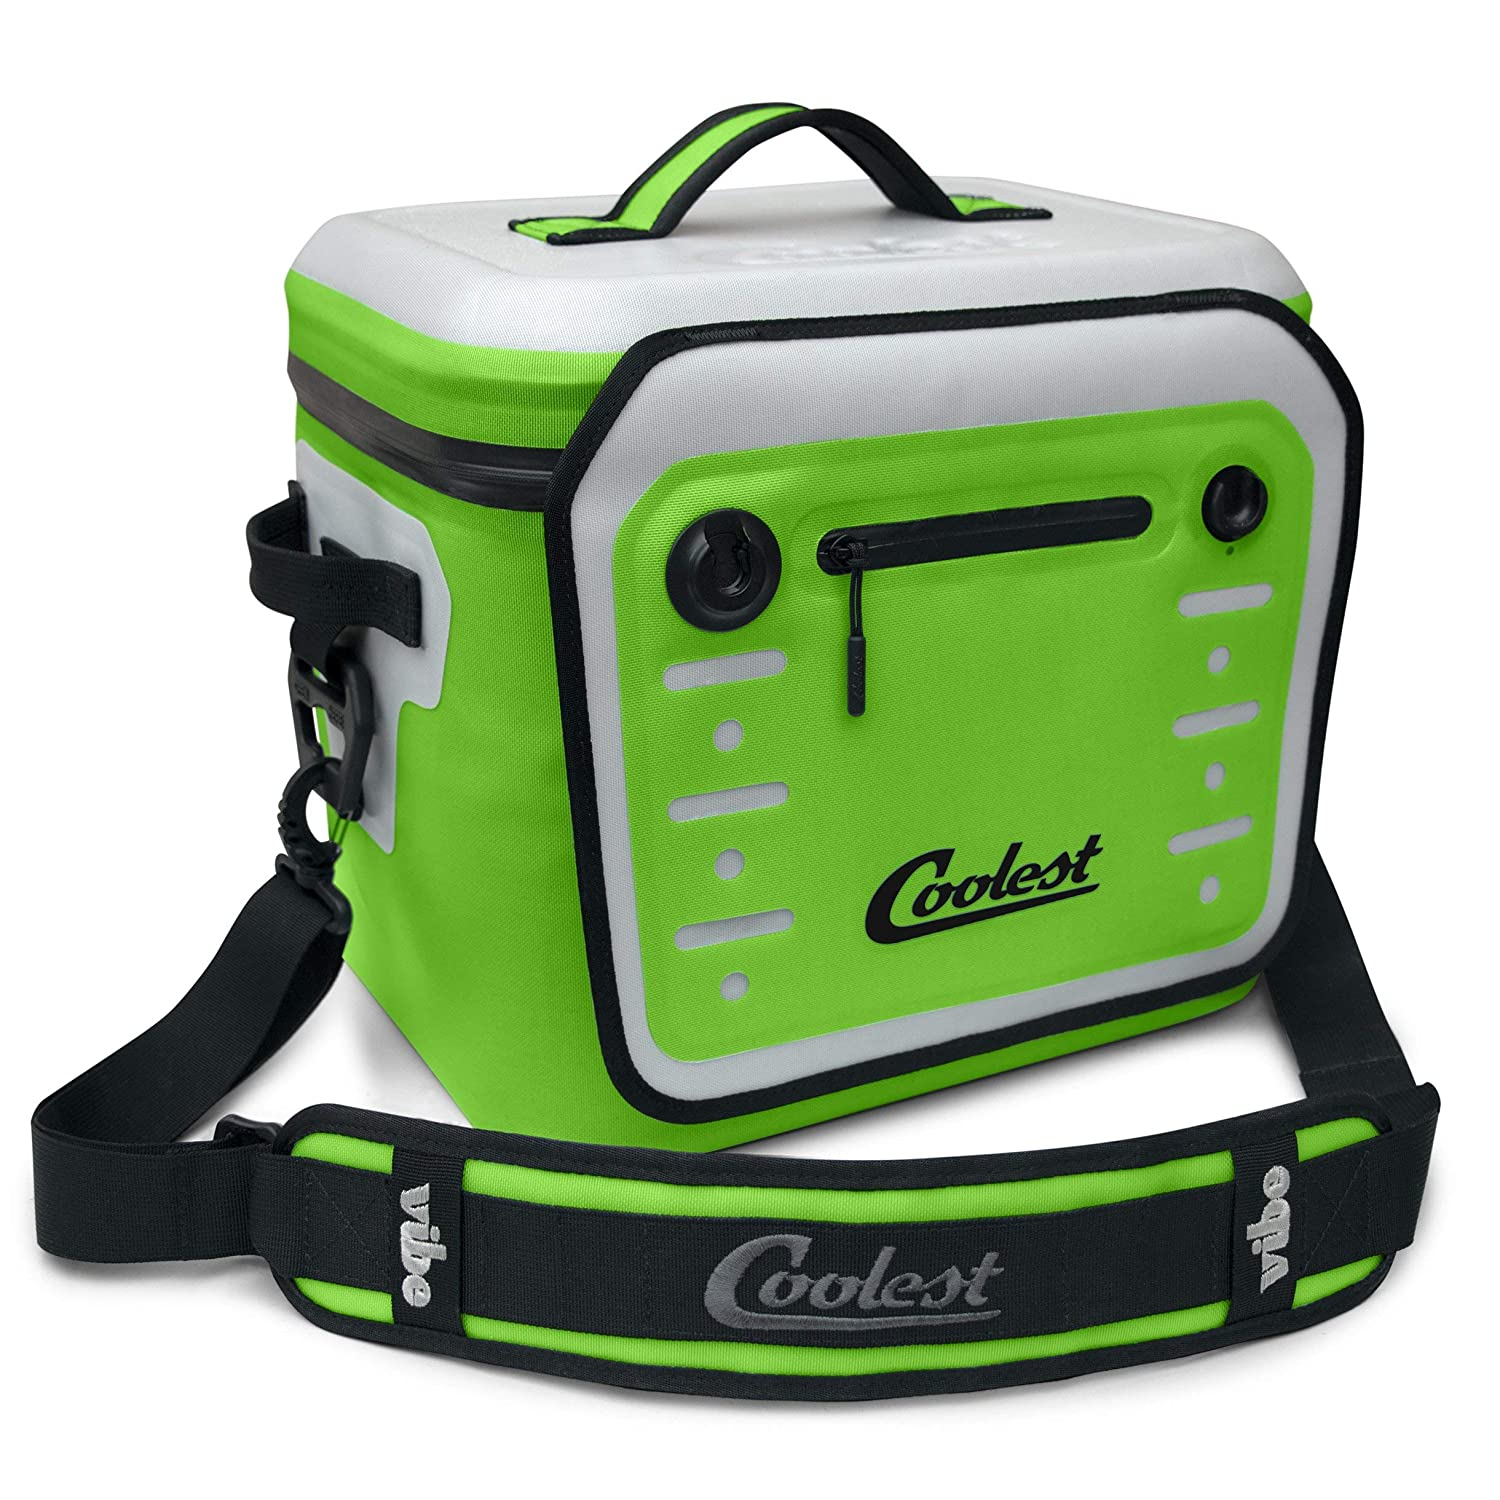 Waterproof Portable Cooler with Fliplock Magnetic Latch and Universal Mount Boating Biking Perfect for The Beach Insulated Camping tailgaiting 18 Can, Green Coolest Vibe Premium Soft-Sided